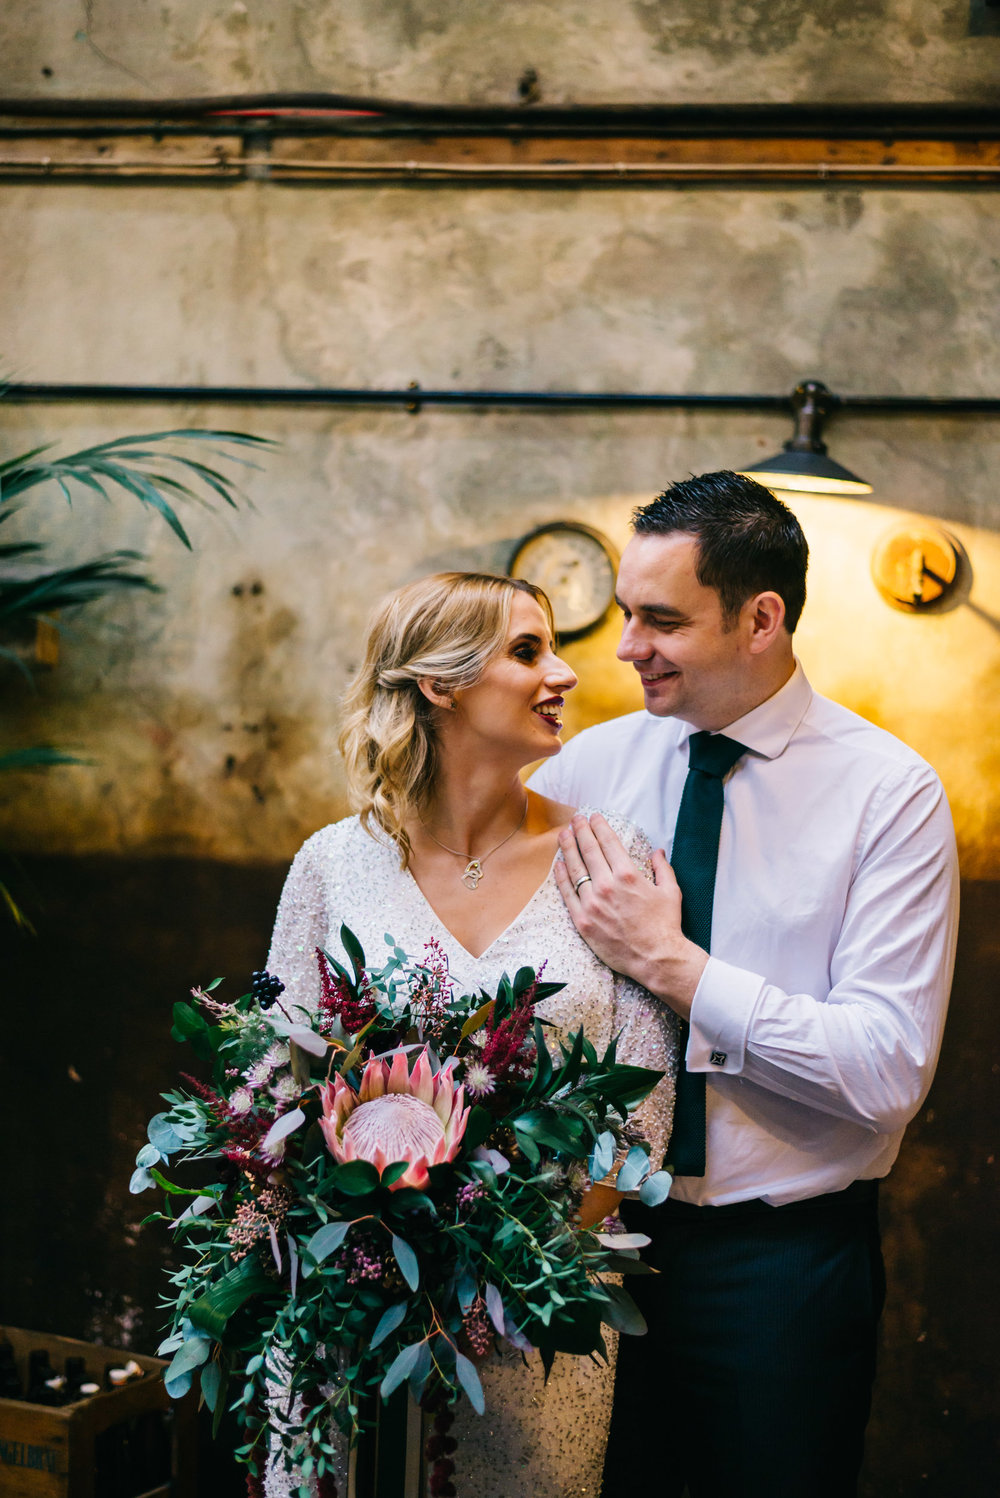 Holmes Mill, Clitheroe, Lancashire - Styled Wedding Shoot-5.jpg